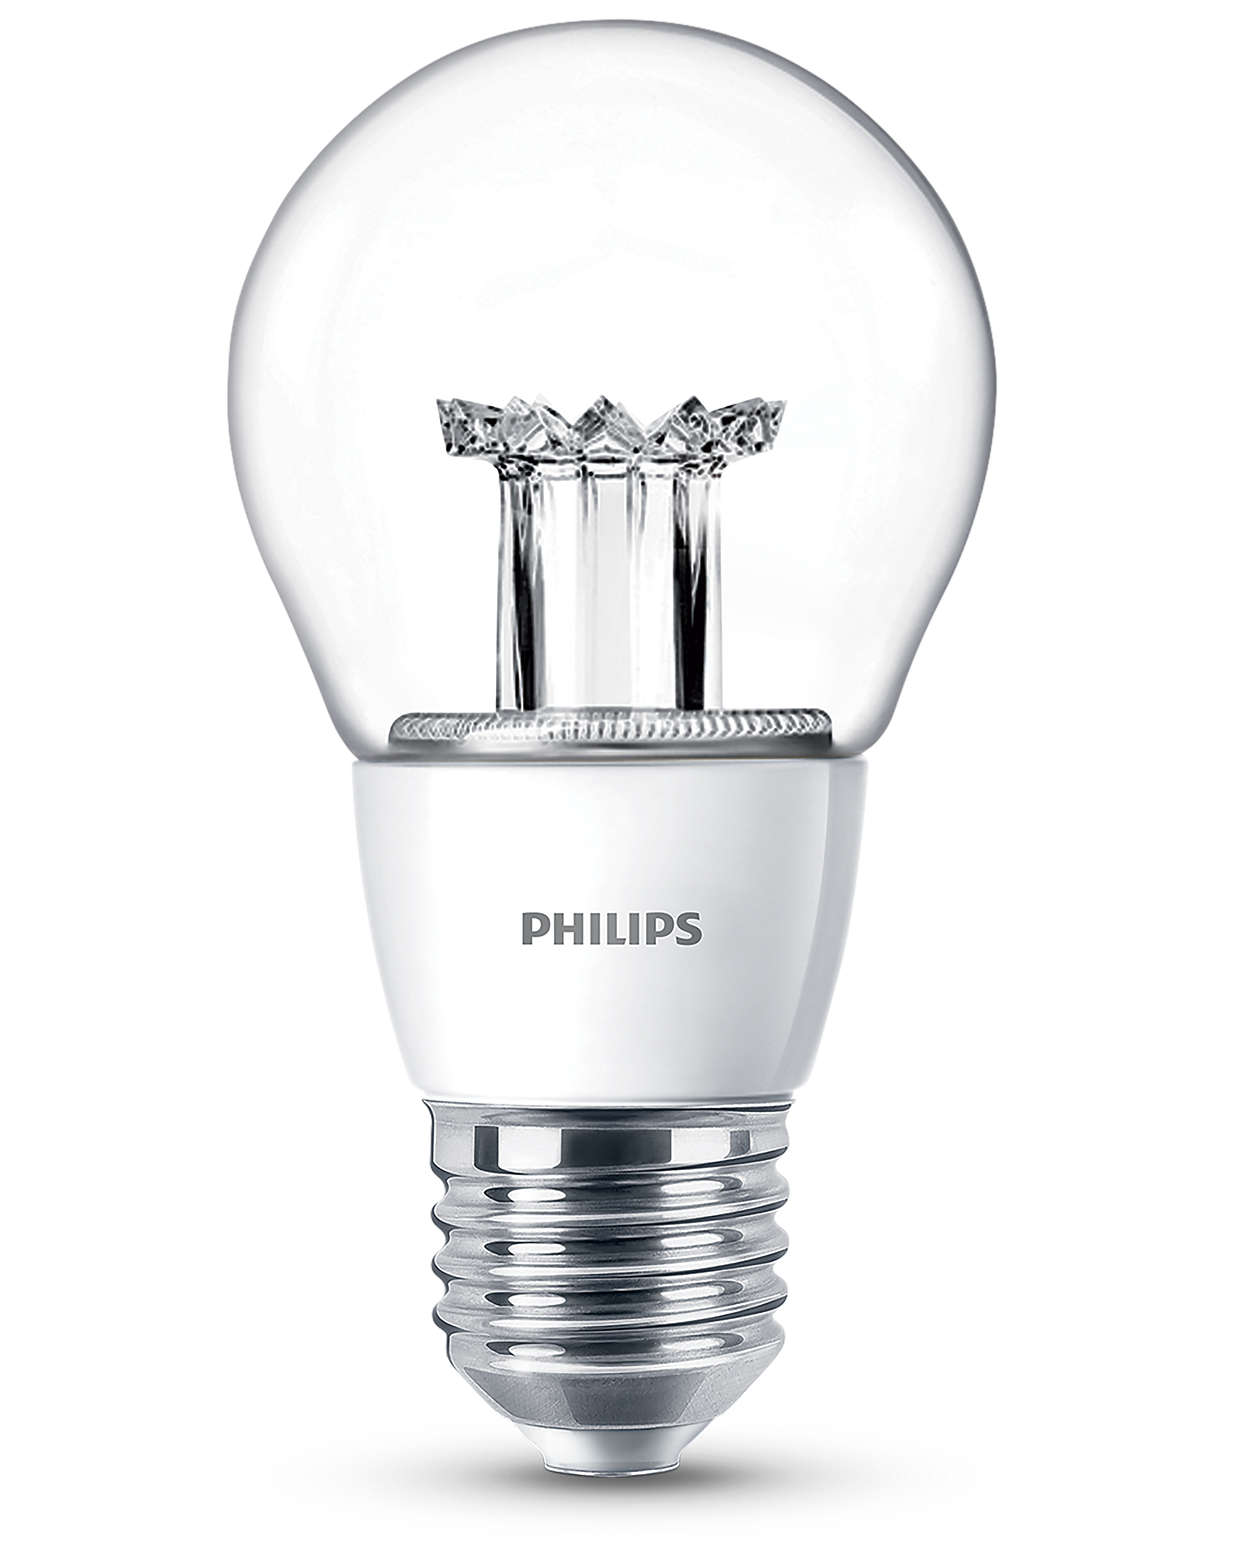 led lampen philips philips led lampen images philips led. Black Bedroom Furniture Sets. Home Design Ideas